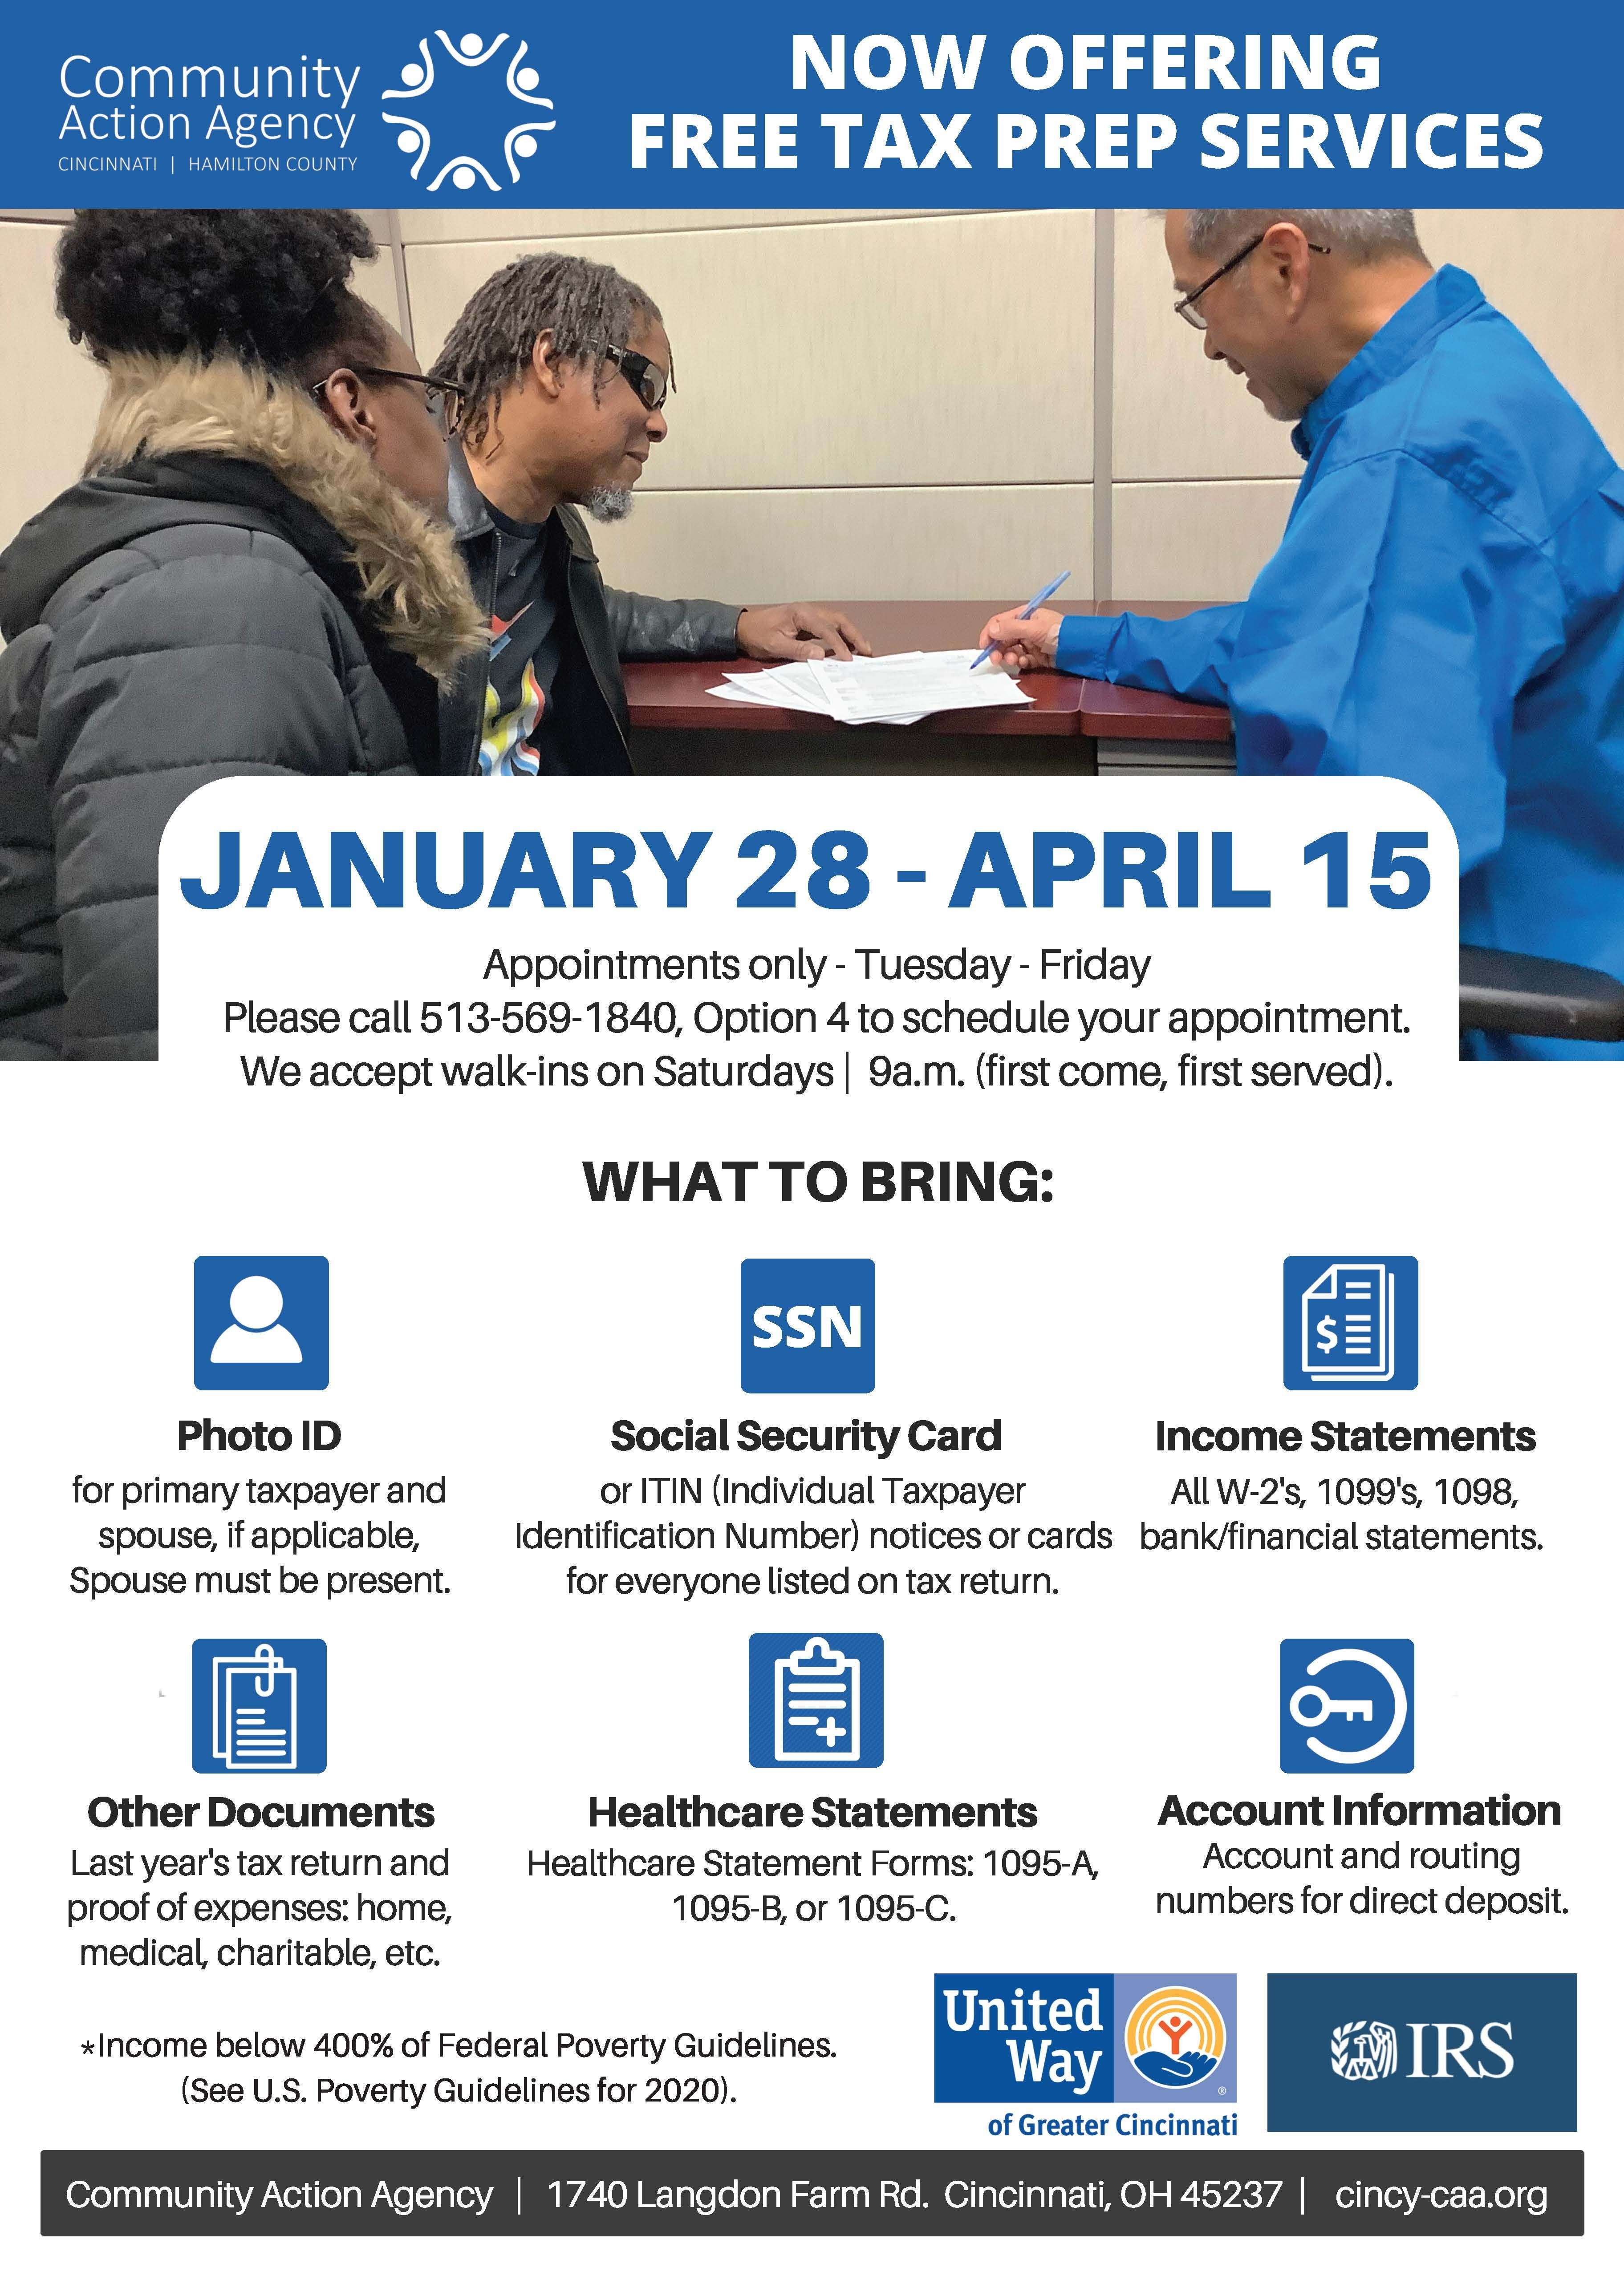 FREE Tax Prep Services at Your Community Action Agency